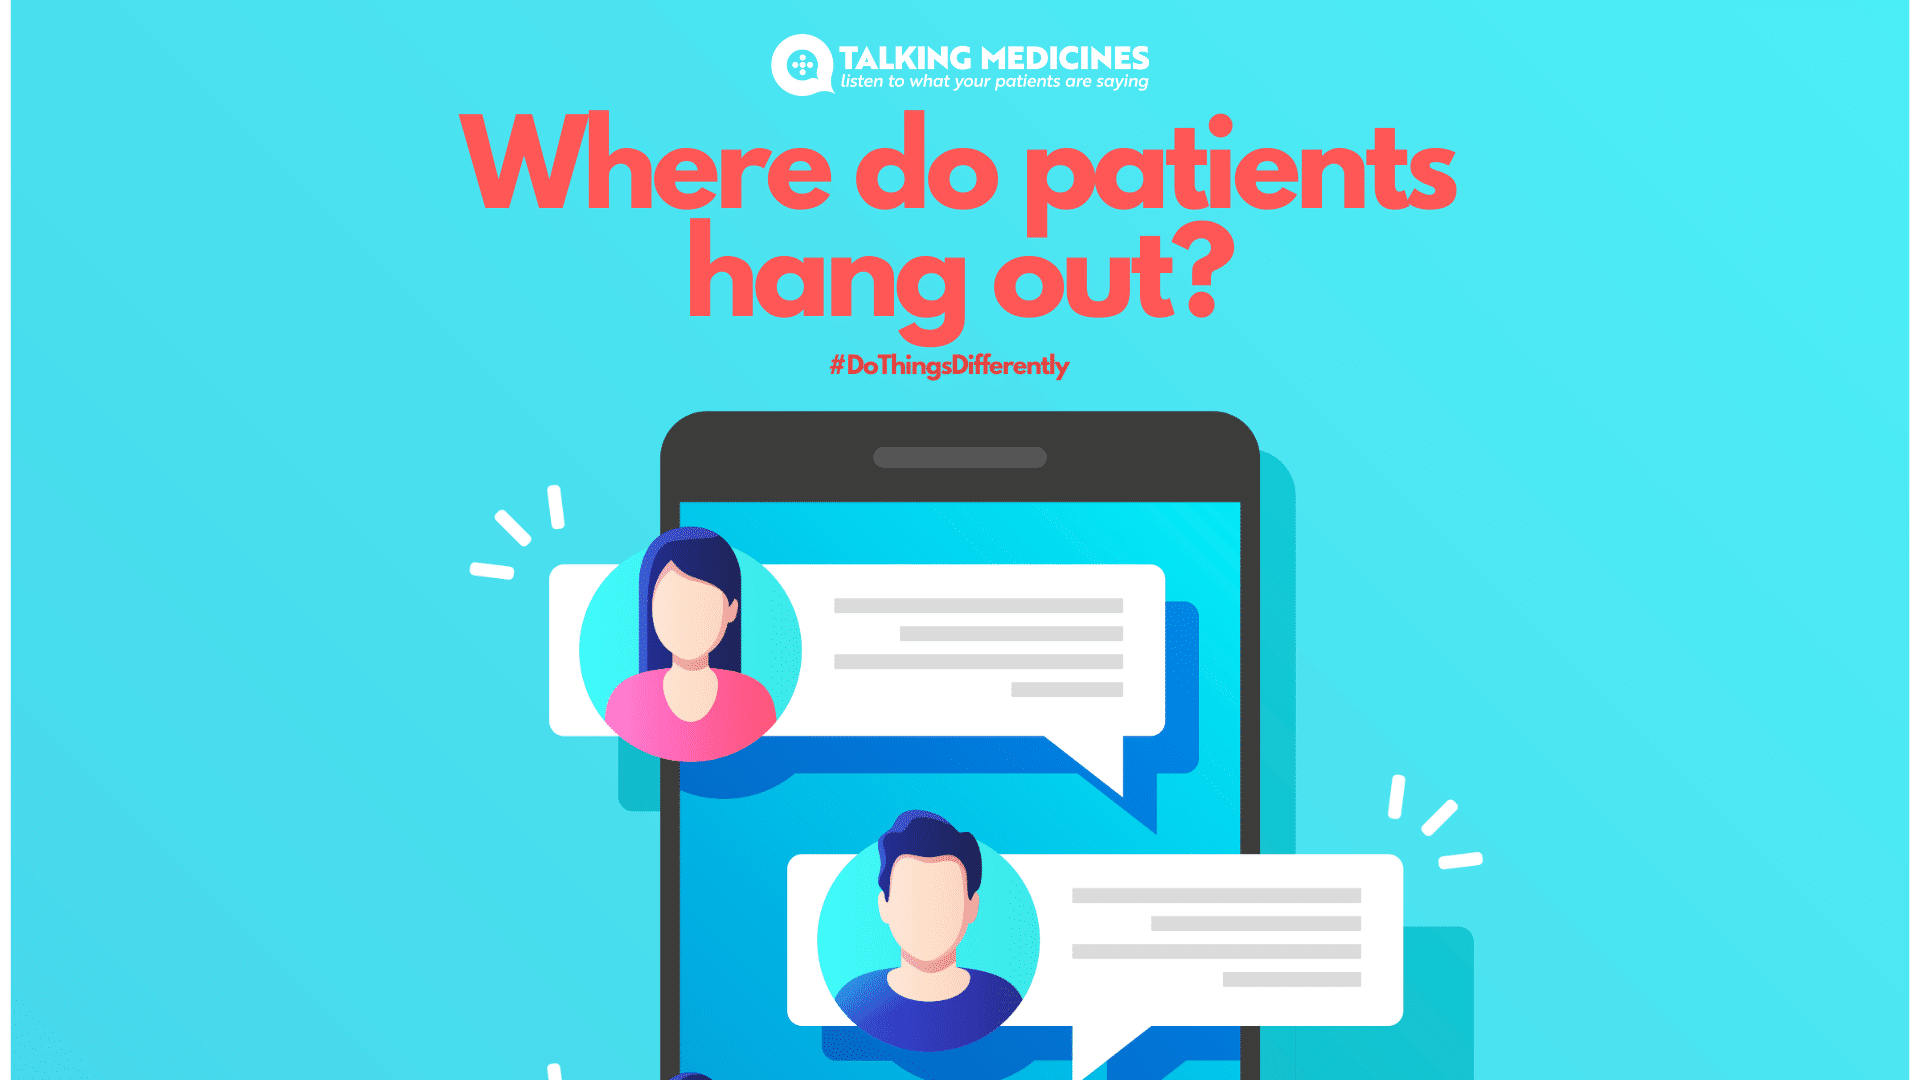 where do patients hang out?